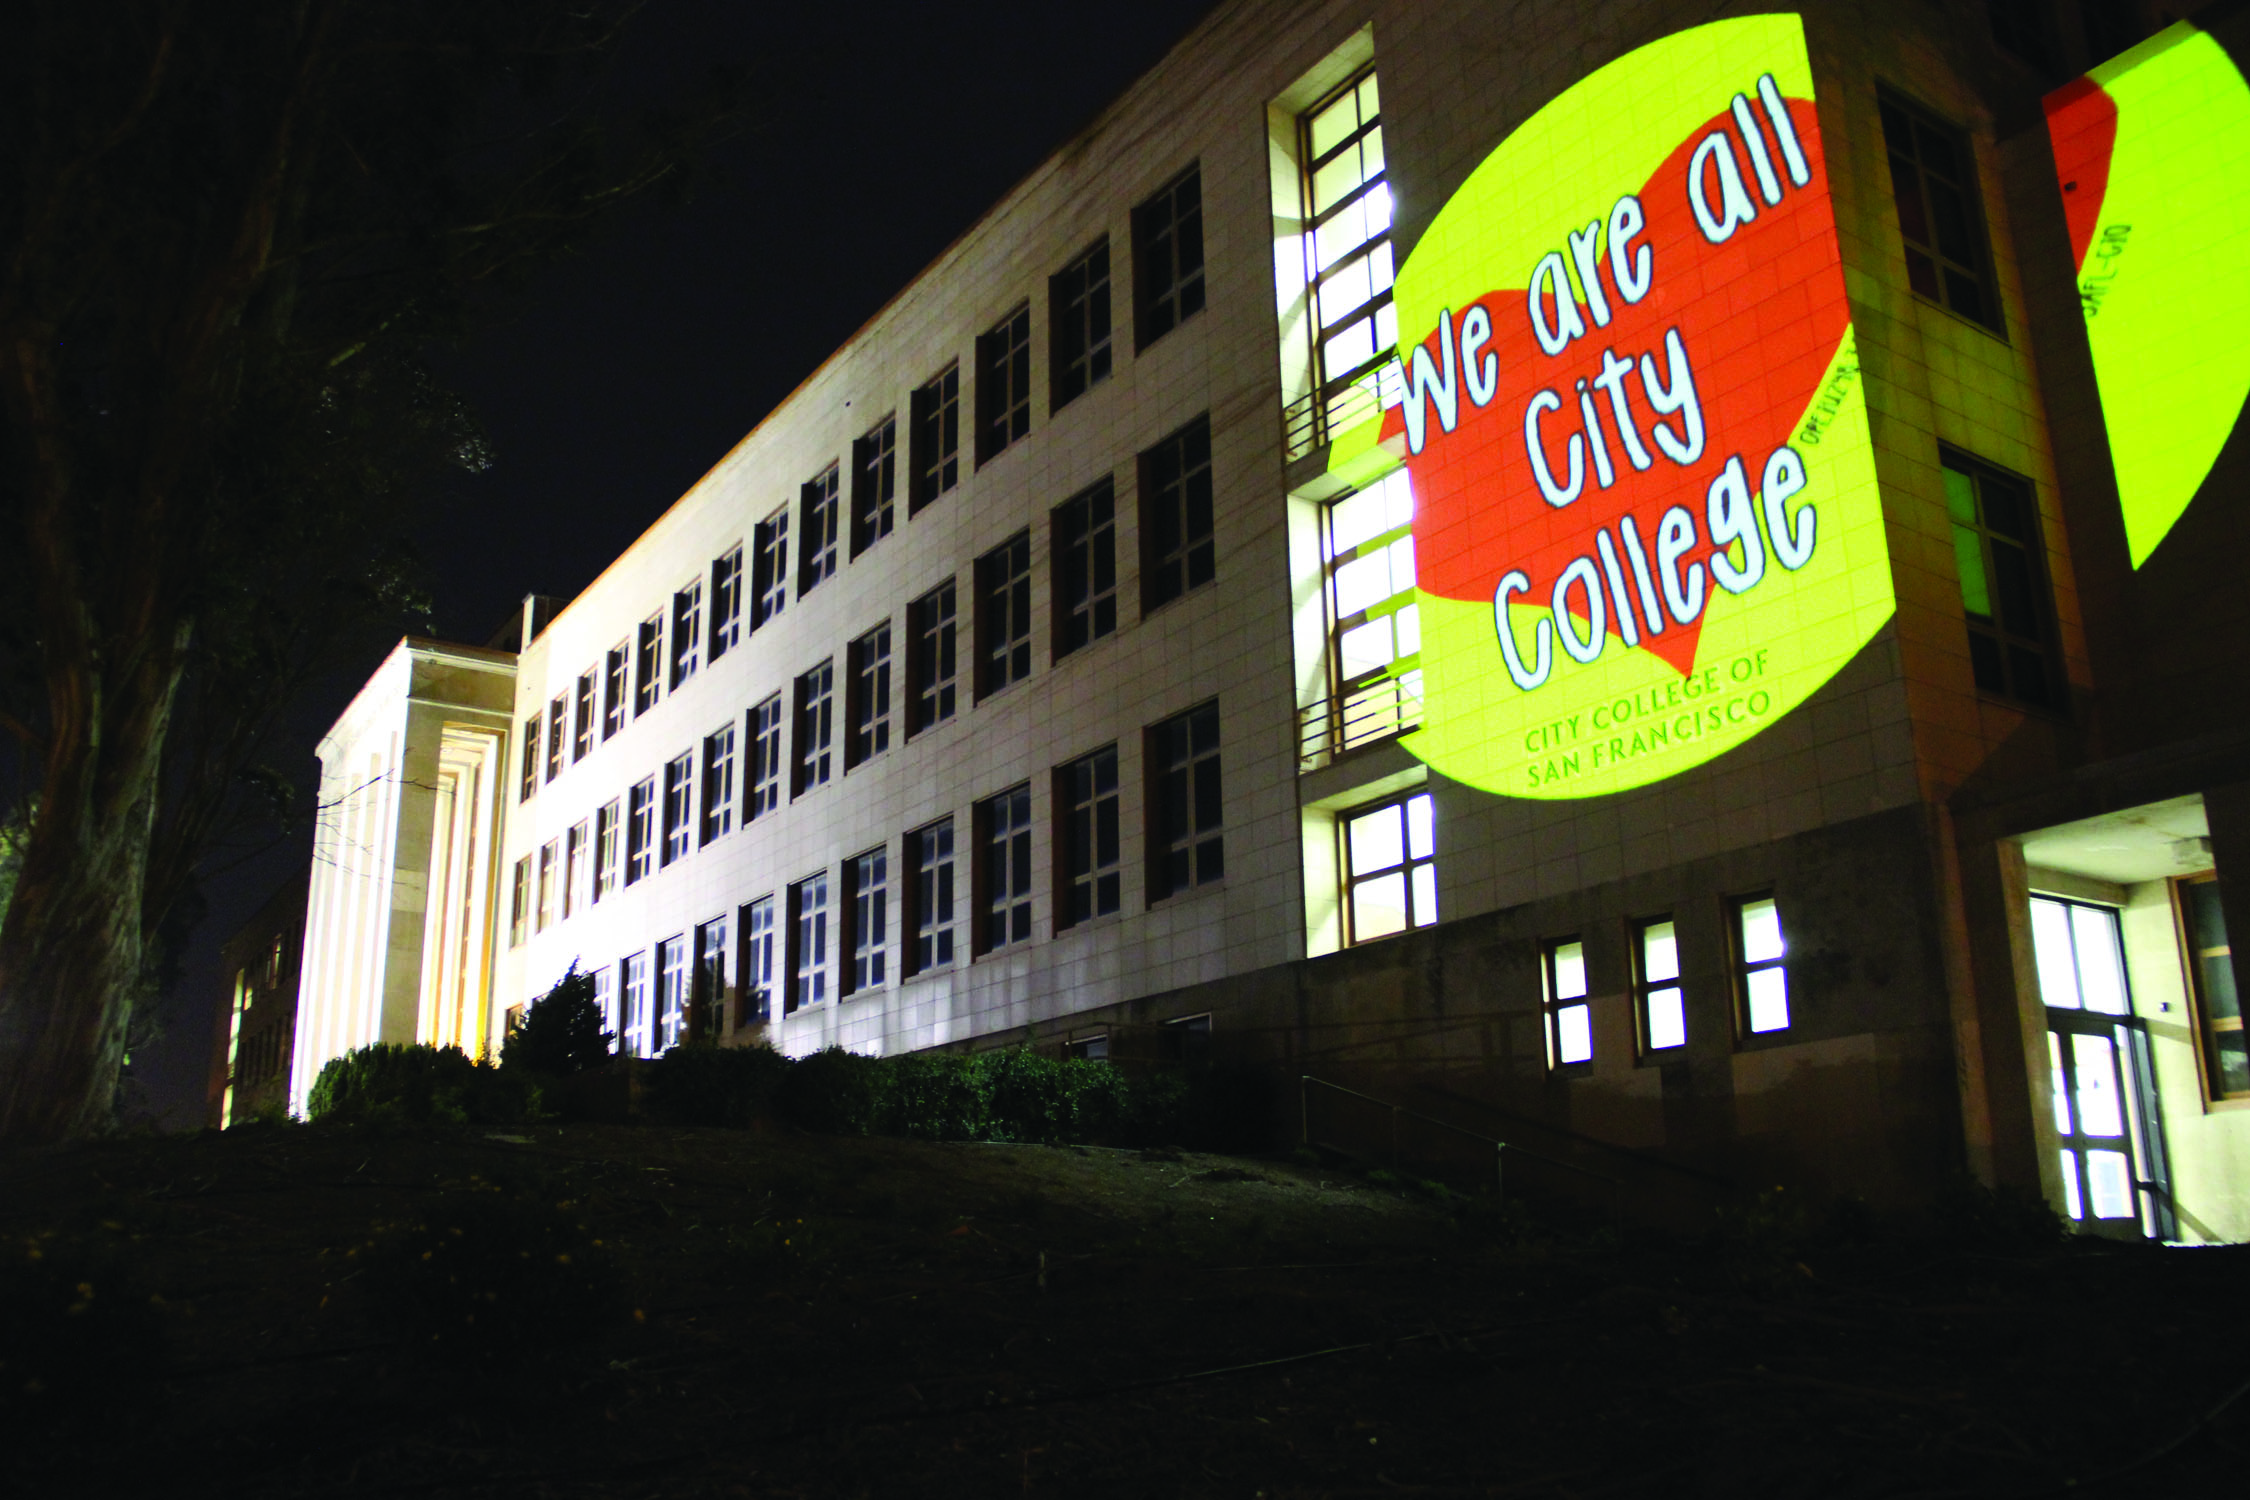 Community support lights up the side of CCSF's Science Building. Courtesy of the San Francisco Projection Department.